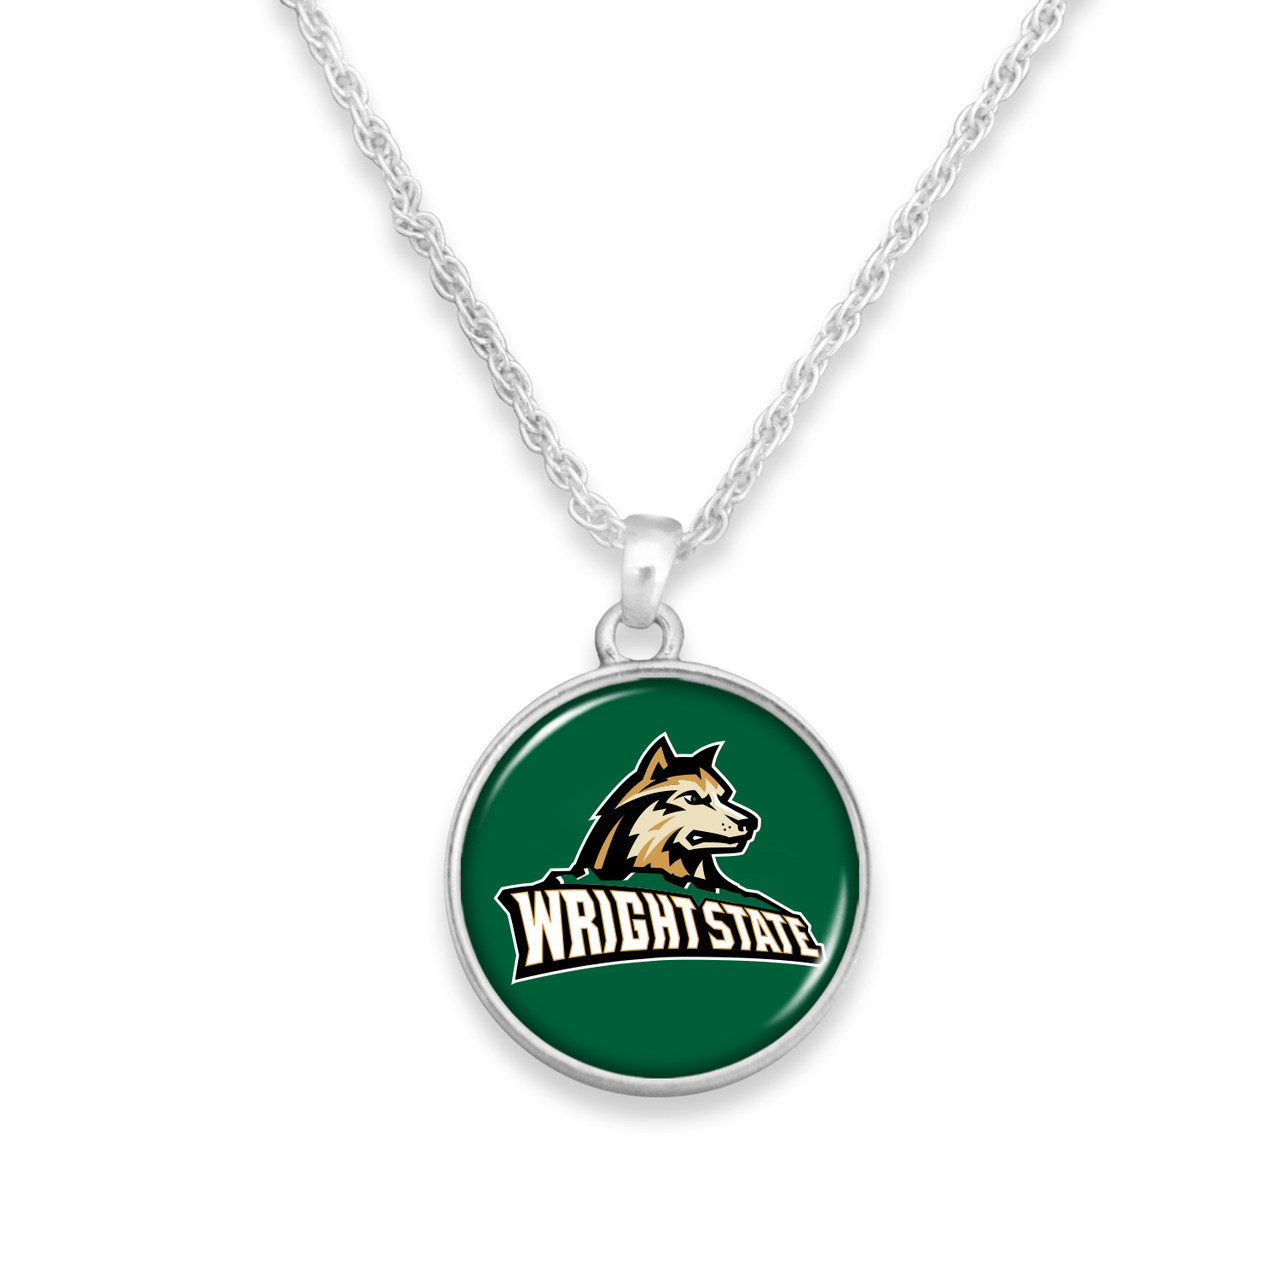 Wright State Raiders Necklace- Campus Chic